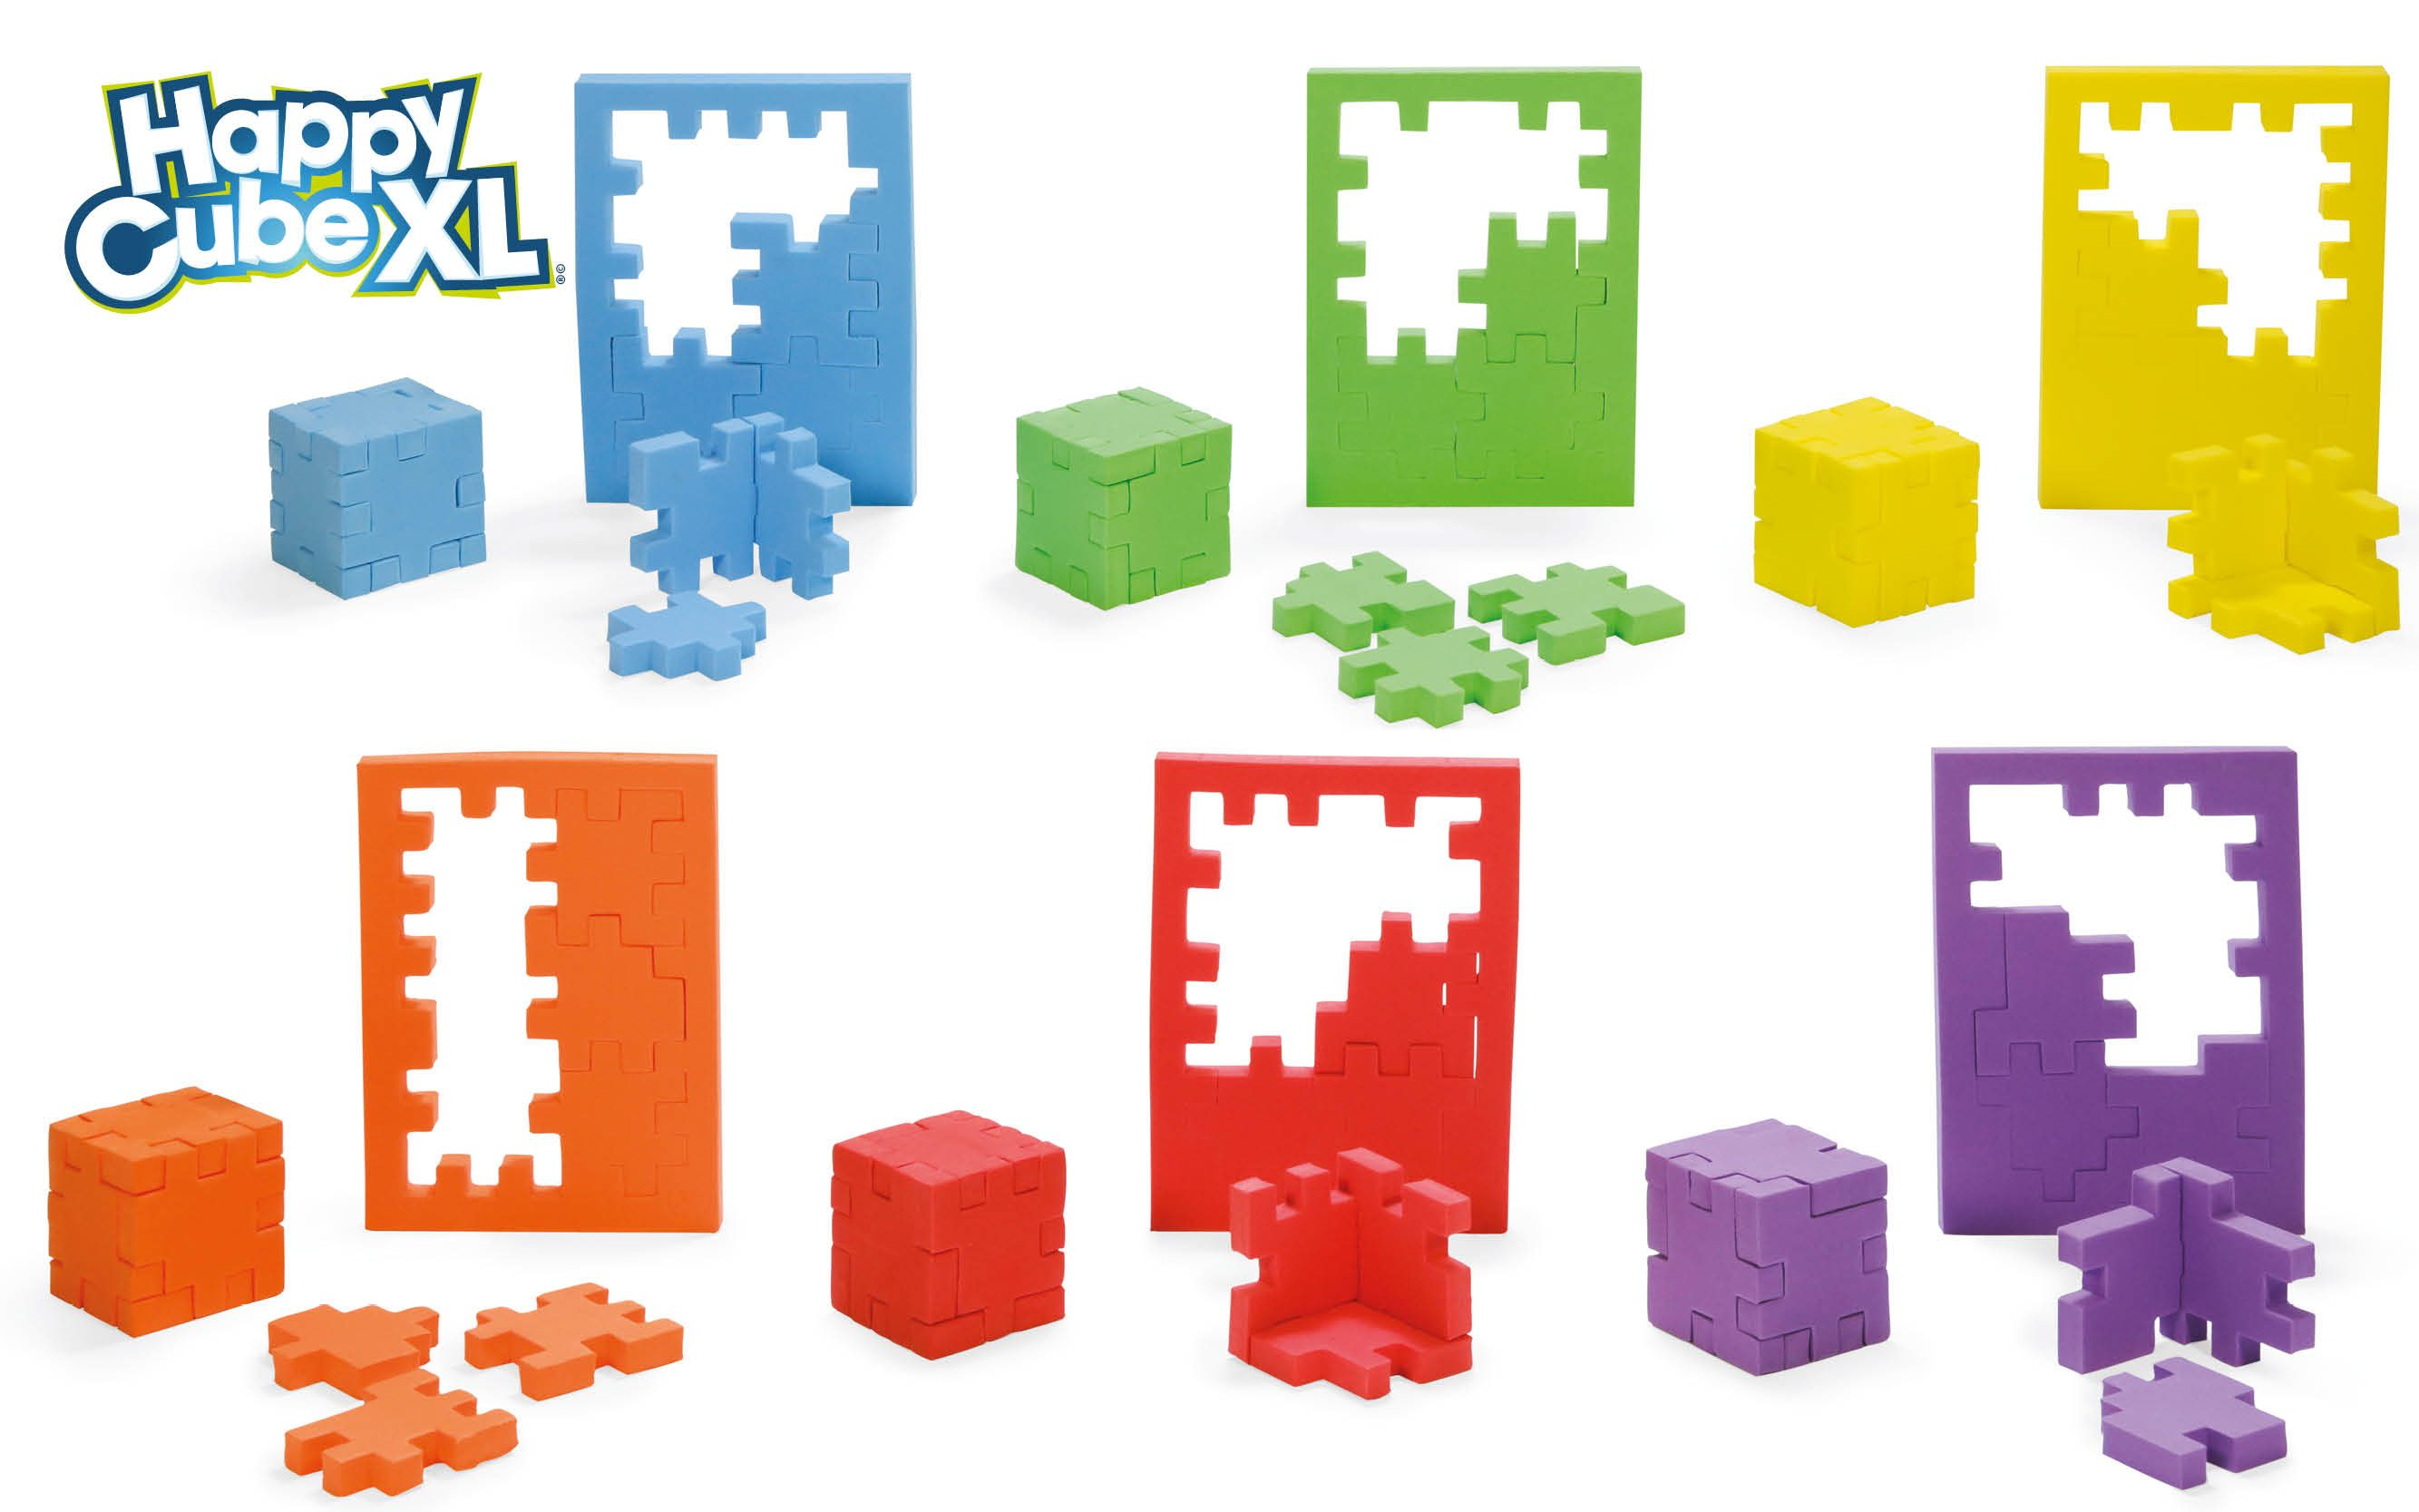 Happy_HCXL_Happy_Cube_XL-3Dpuzzling-educational-game-6puzzles-haptic-toy